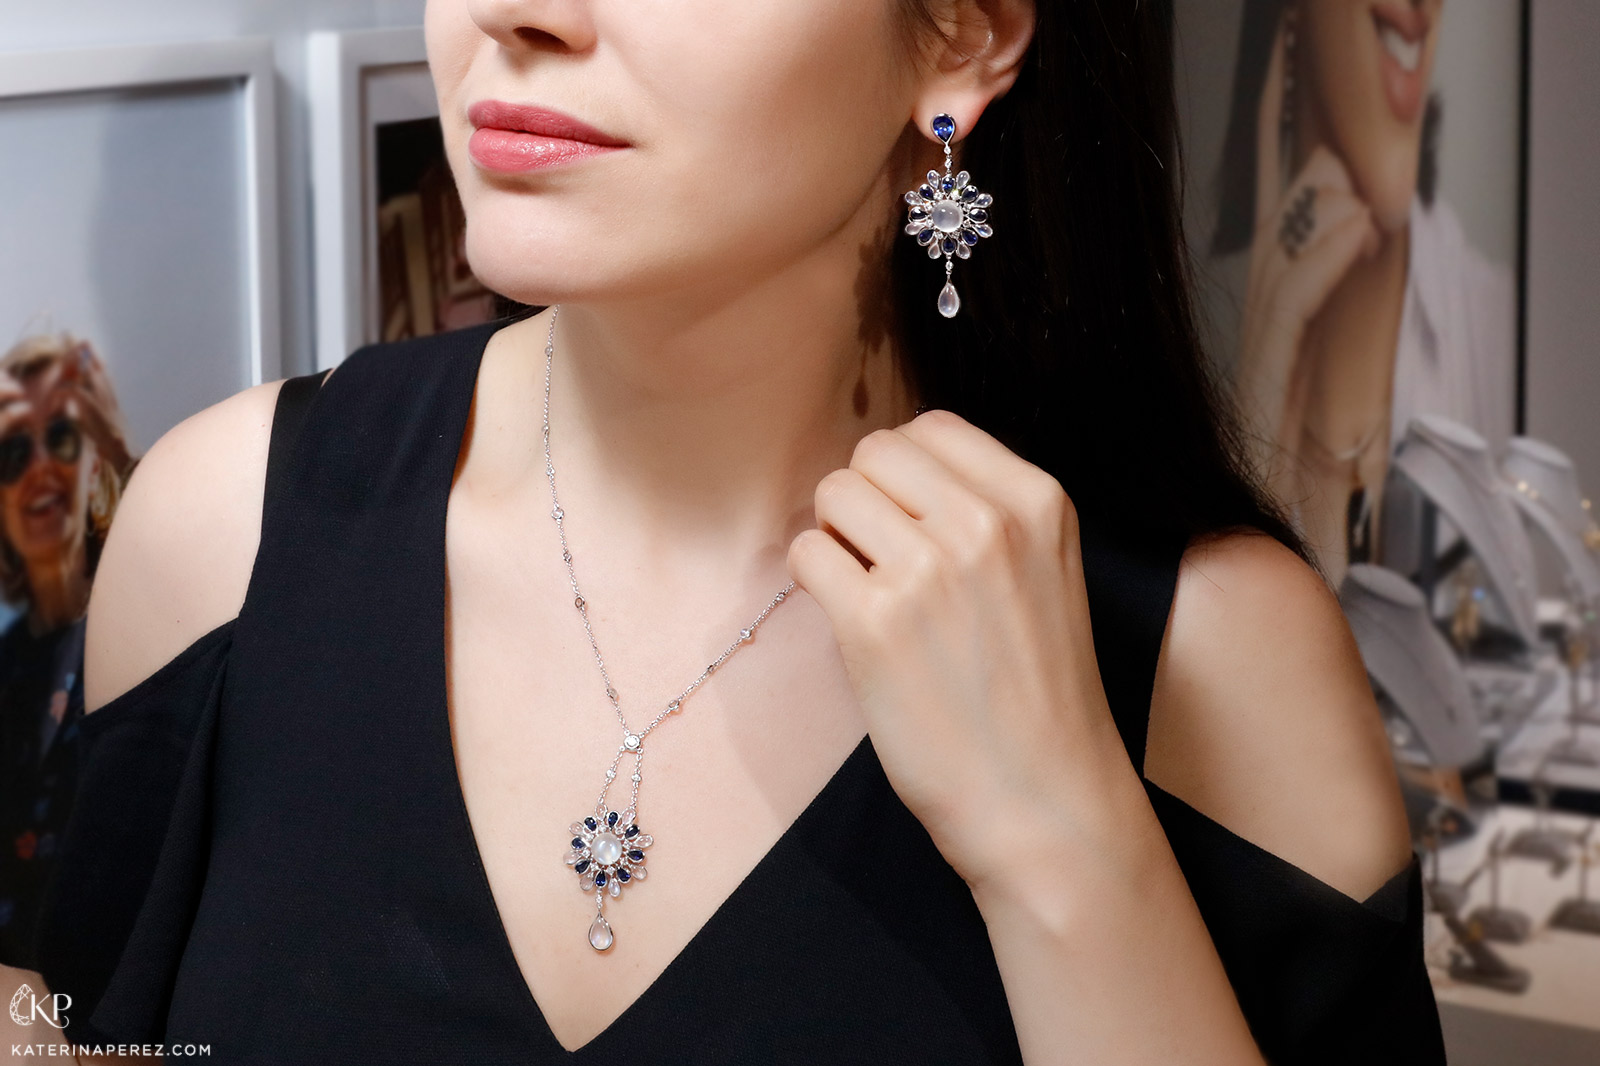 Maria Canale 'Drop' Flower earrings and necklace in moonstone, sapphire and diamonds